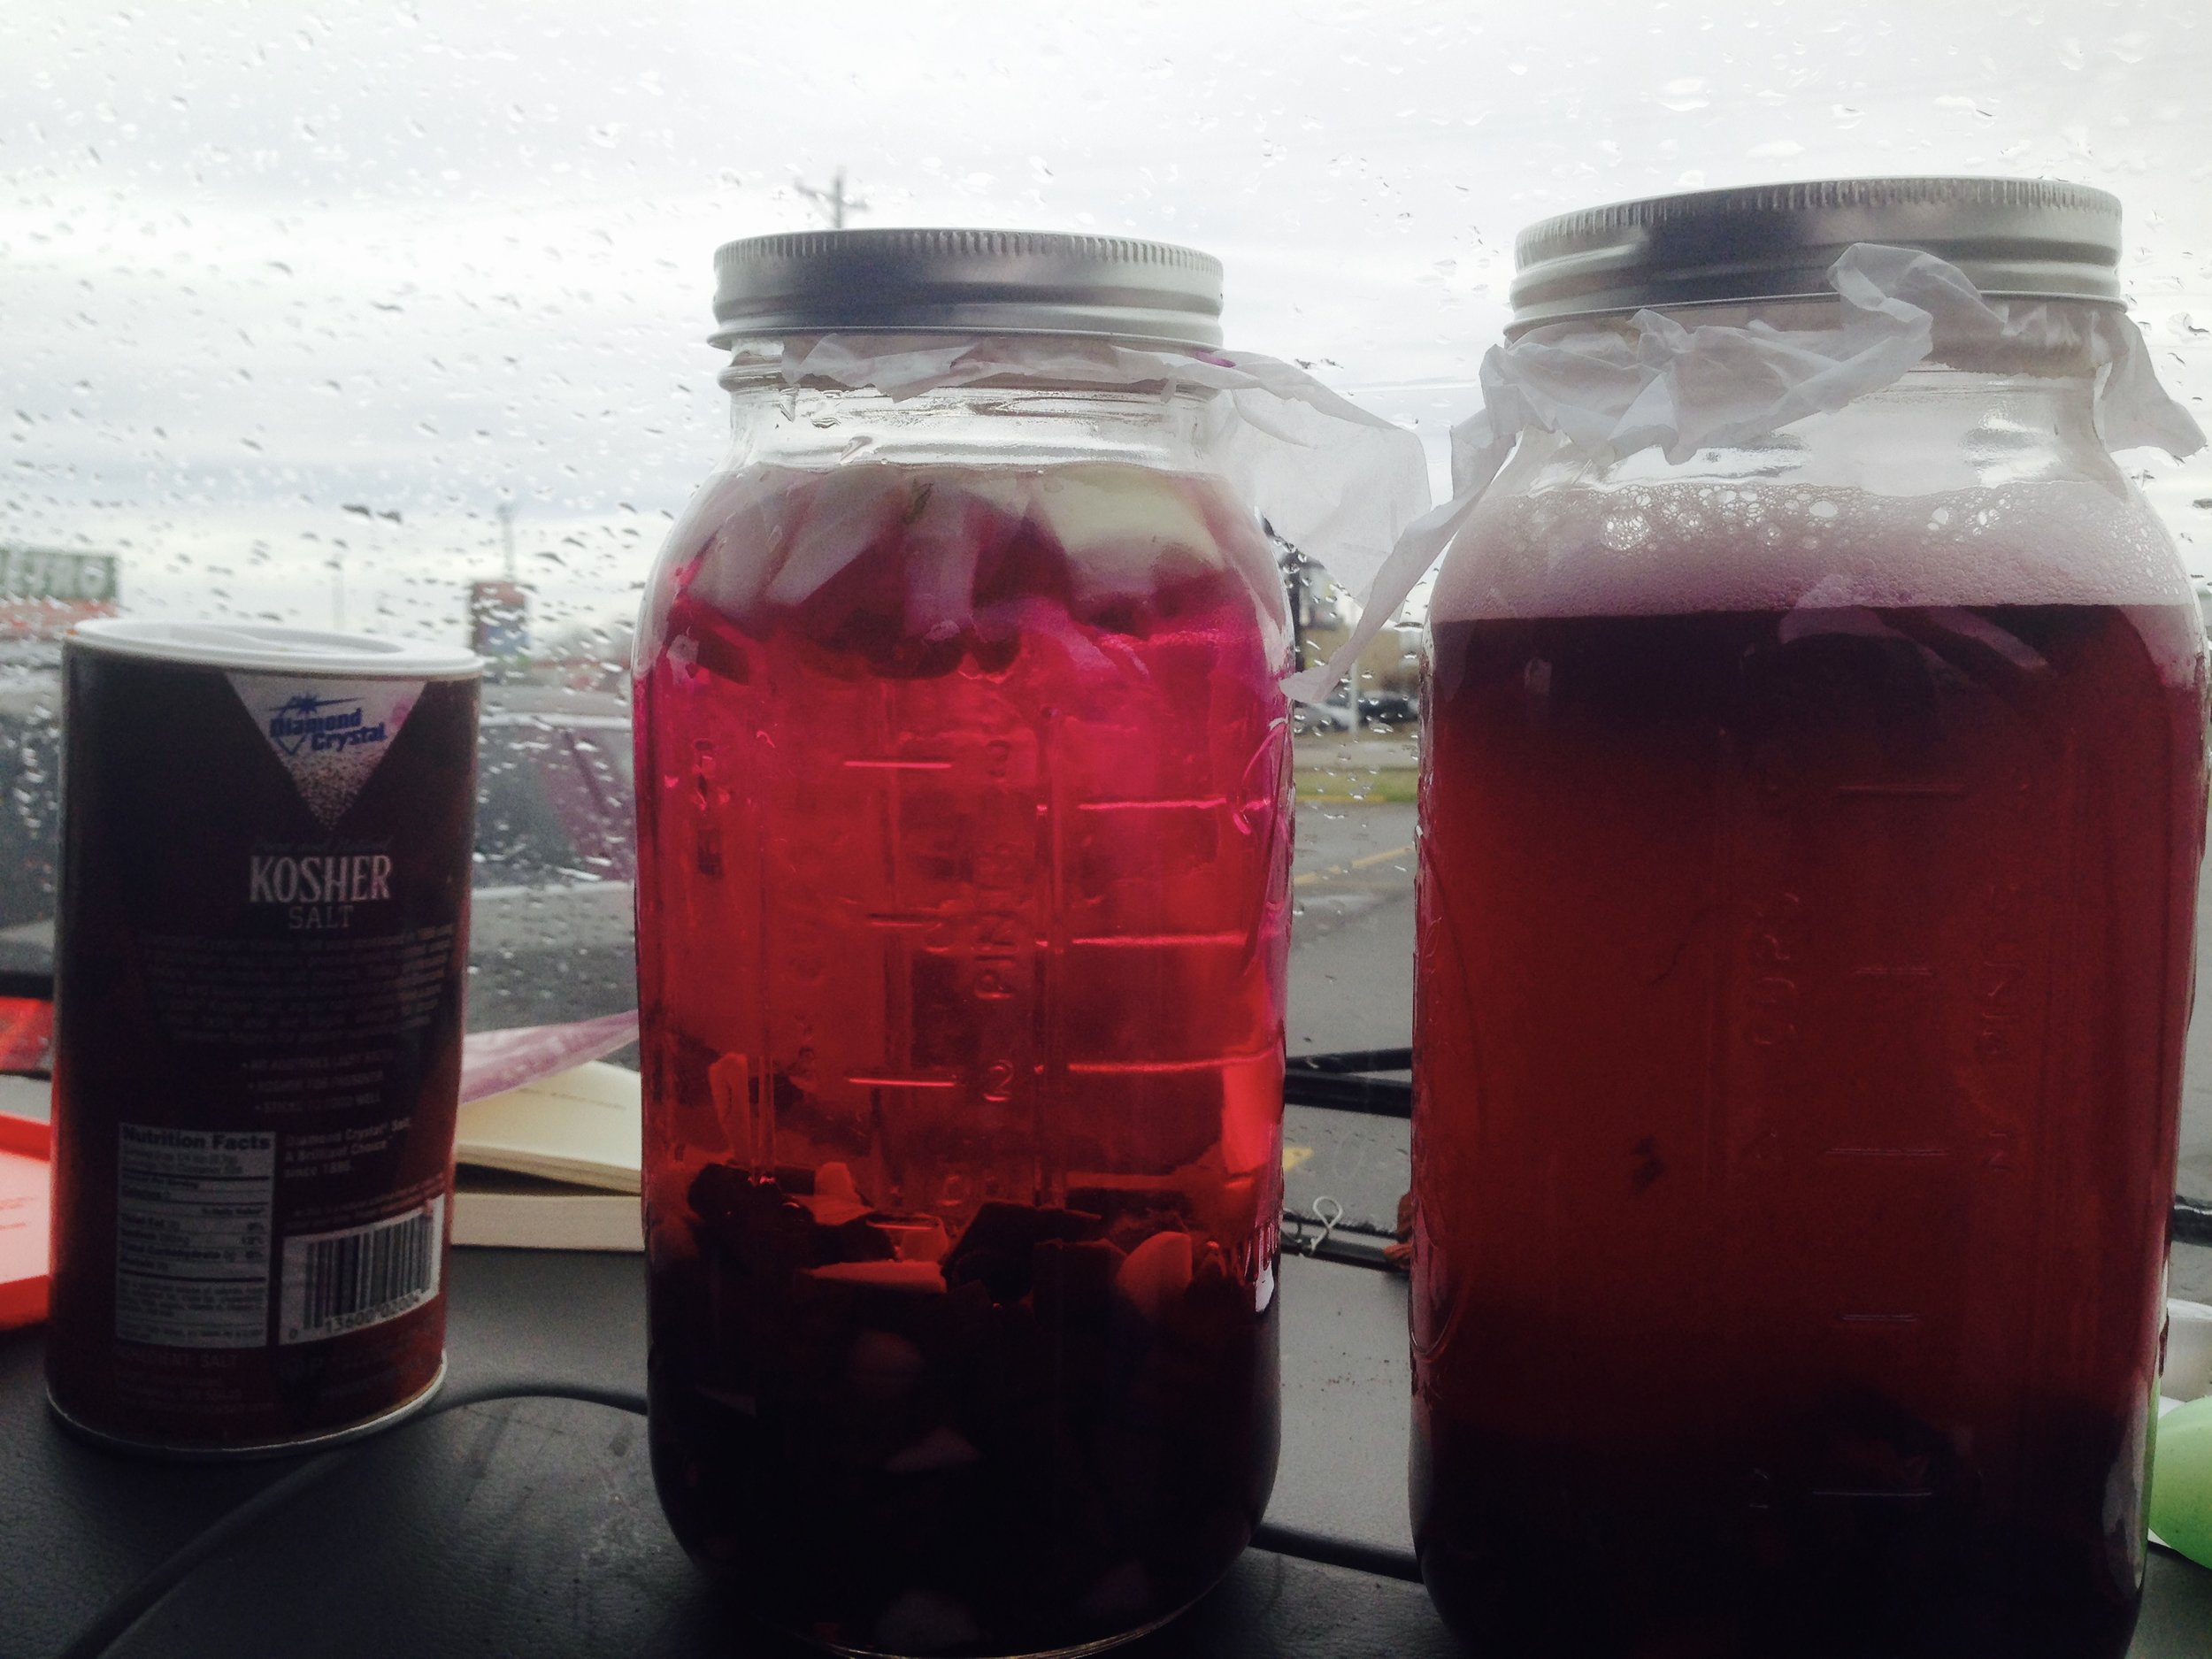 The ferment on the left is the one that was JUST made at the truck stop, the one on the right is a few days in. After a day or so more the one on the right is going to be crazy deep magenta purple red.